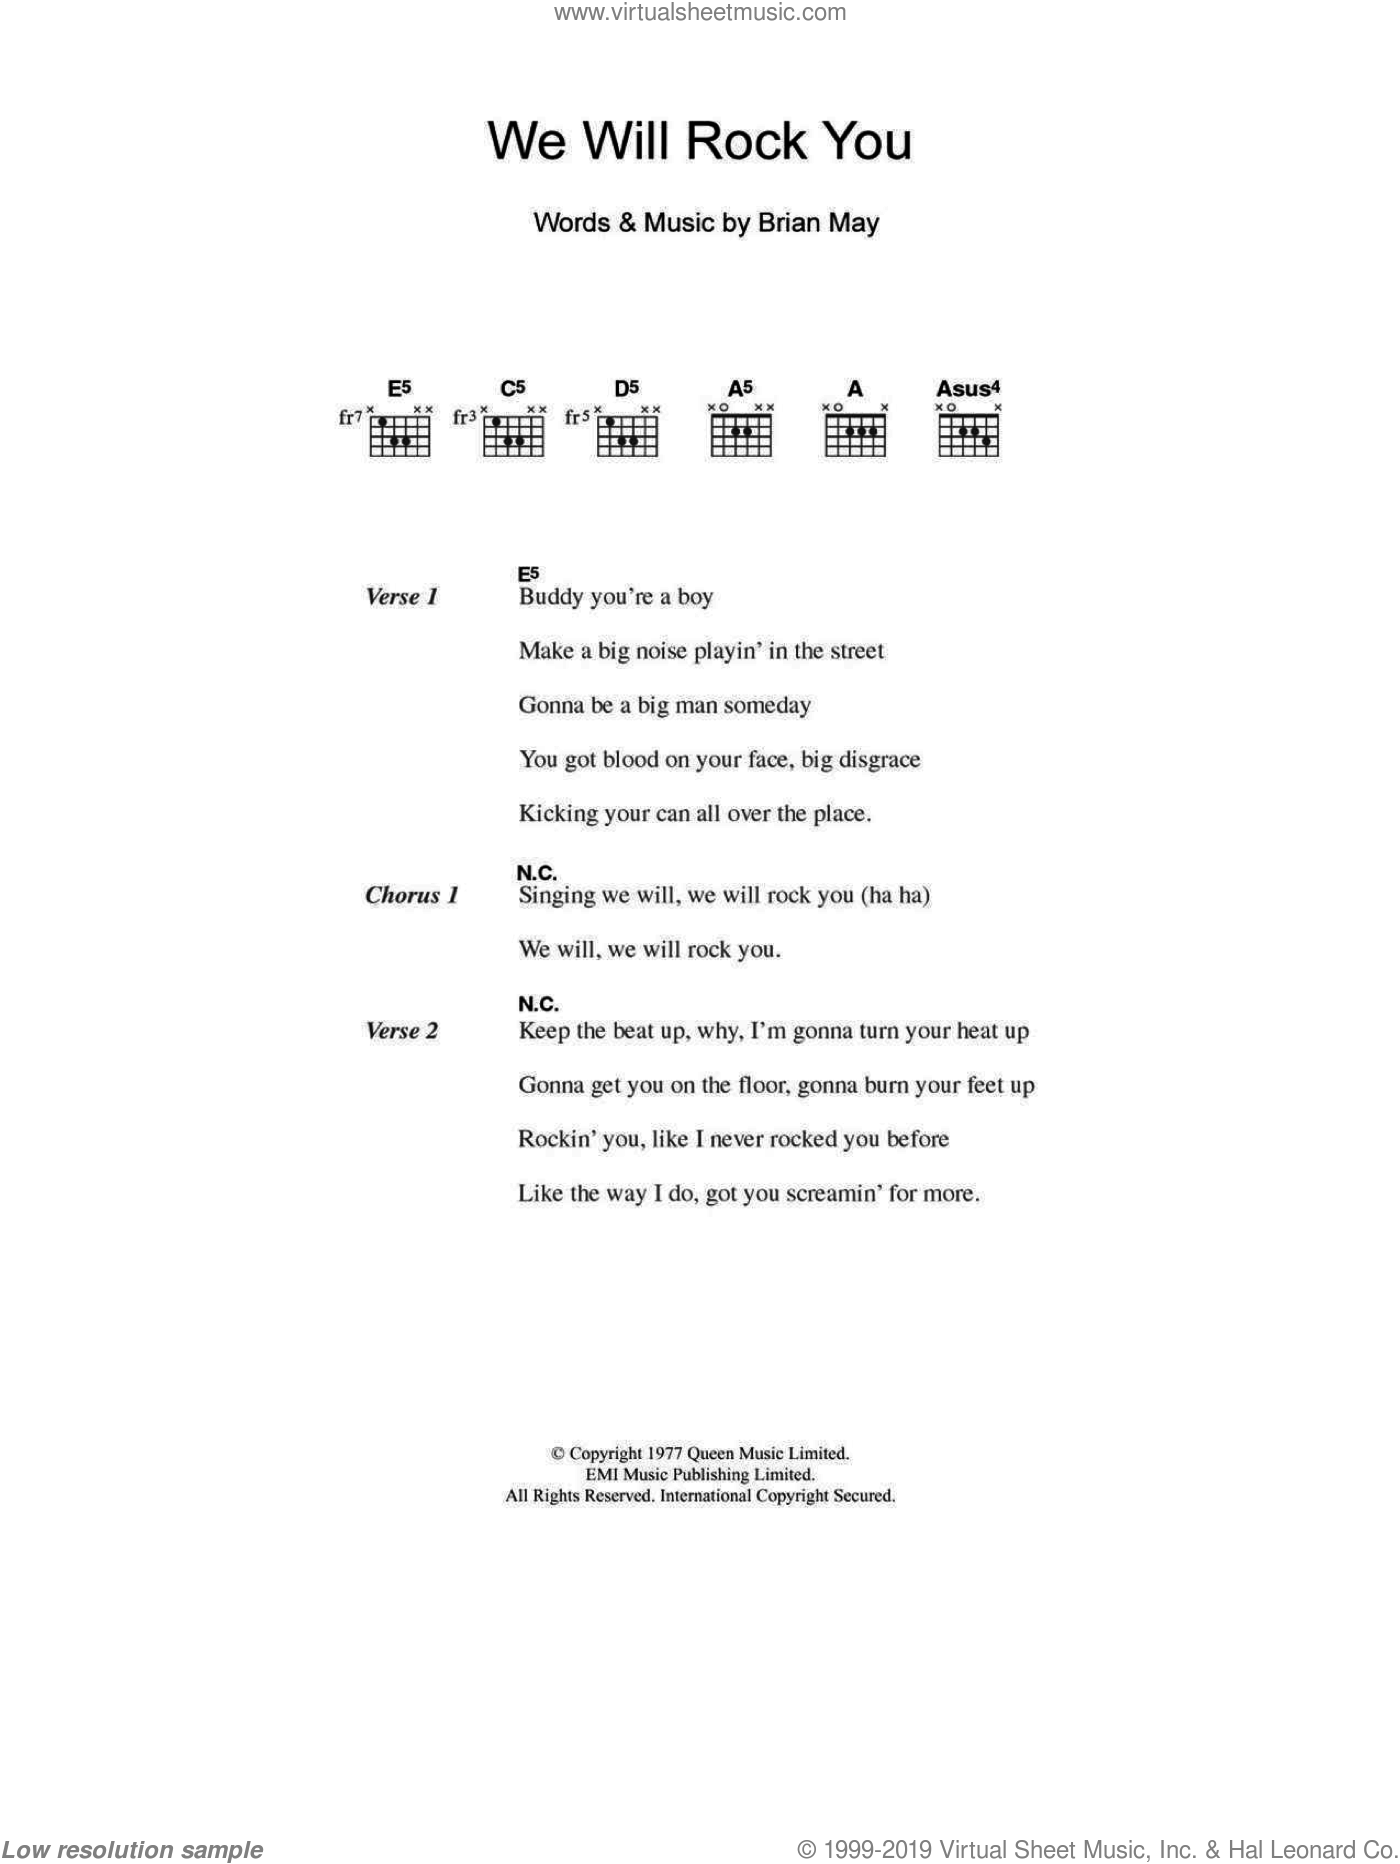 We Will Rock You sheet music for guitar (chords) by Brian May, Ben Folds Five and Queen. Score Image Preview.